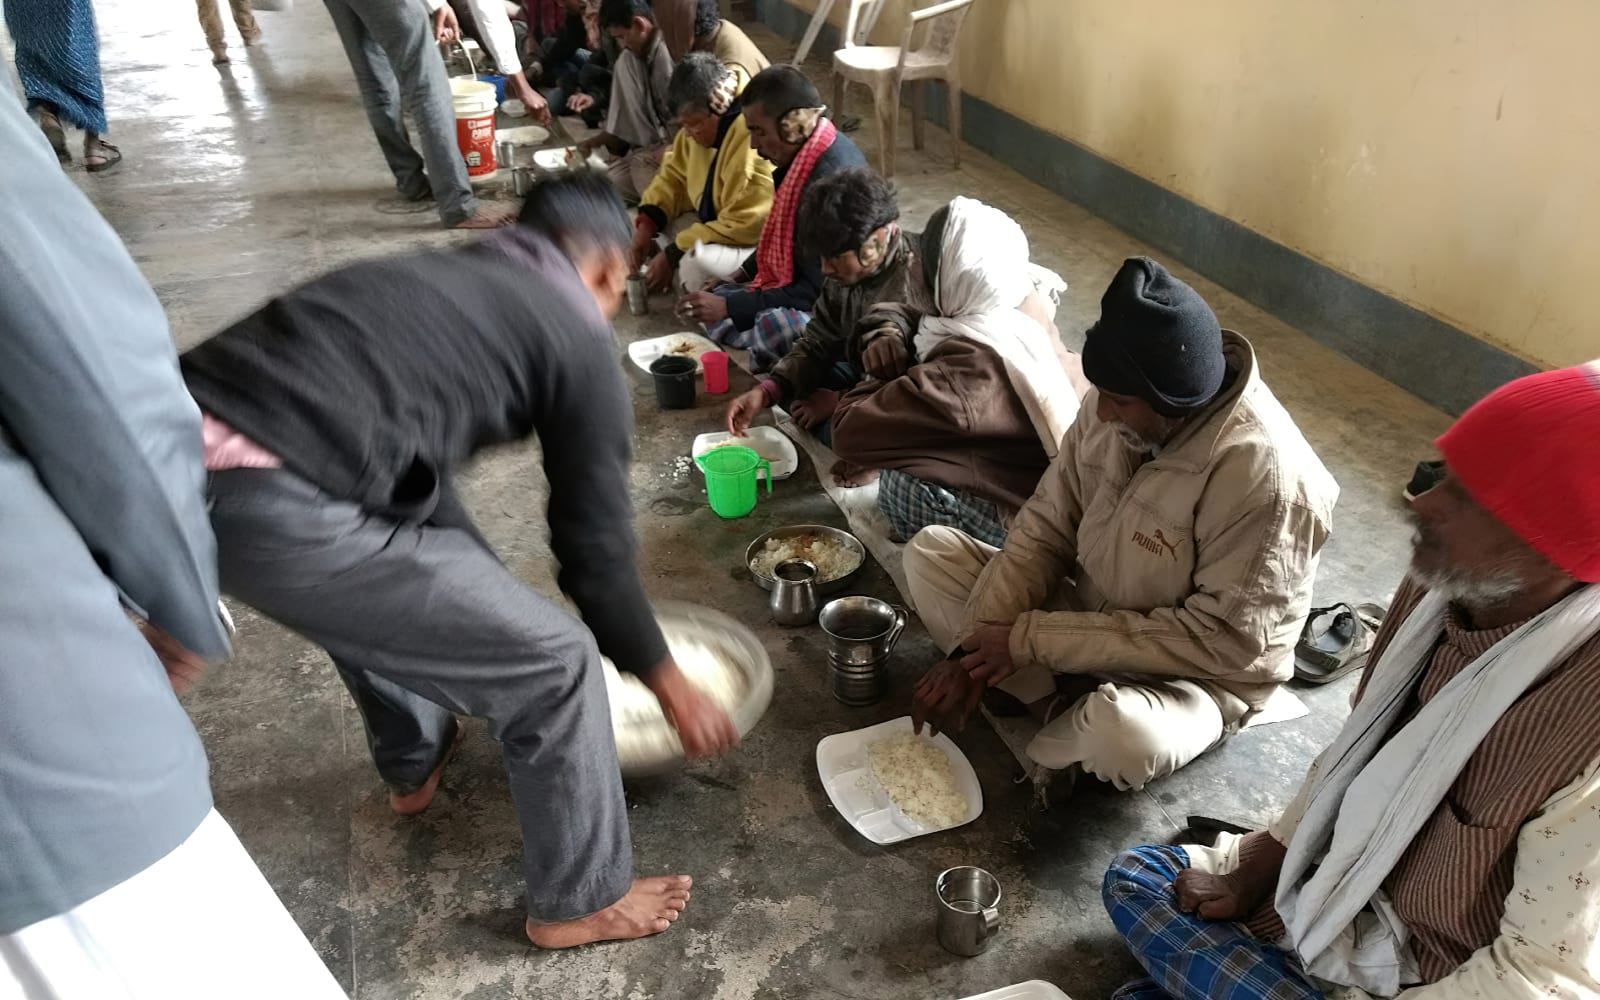 Feeding leprosy patients